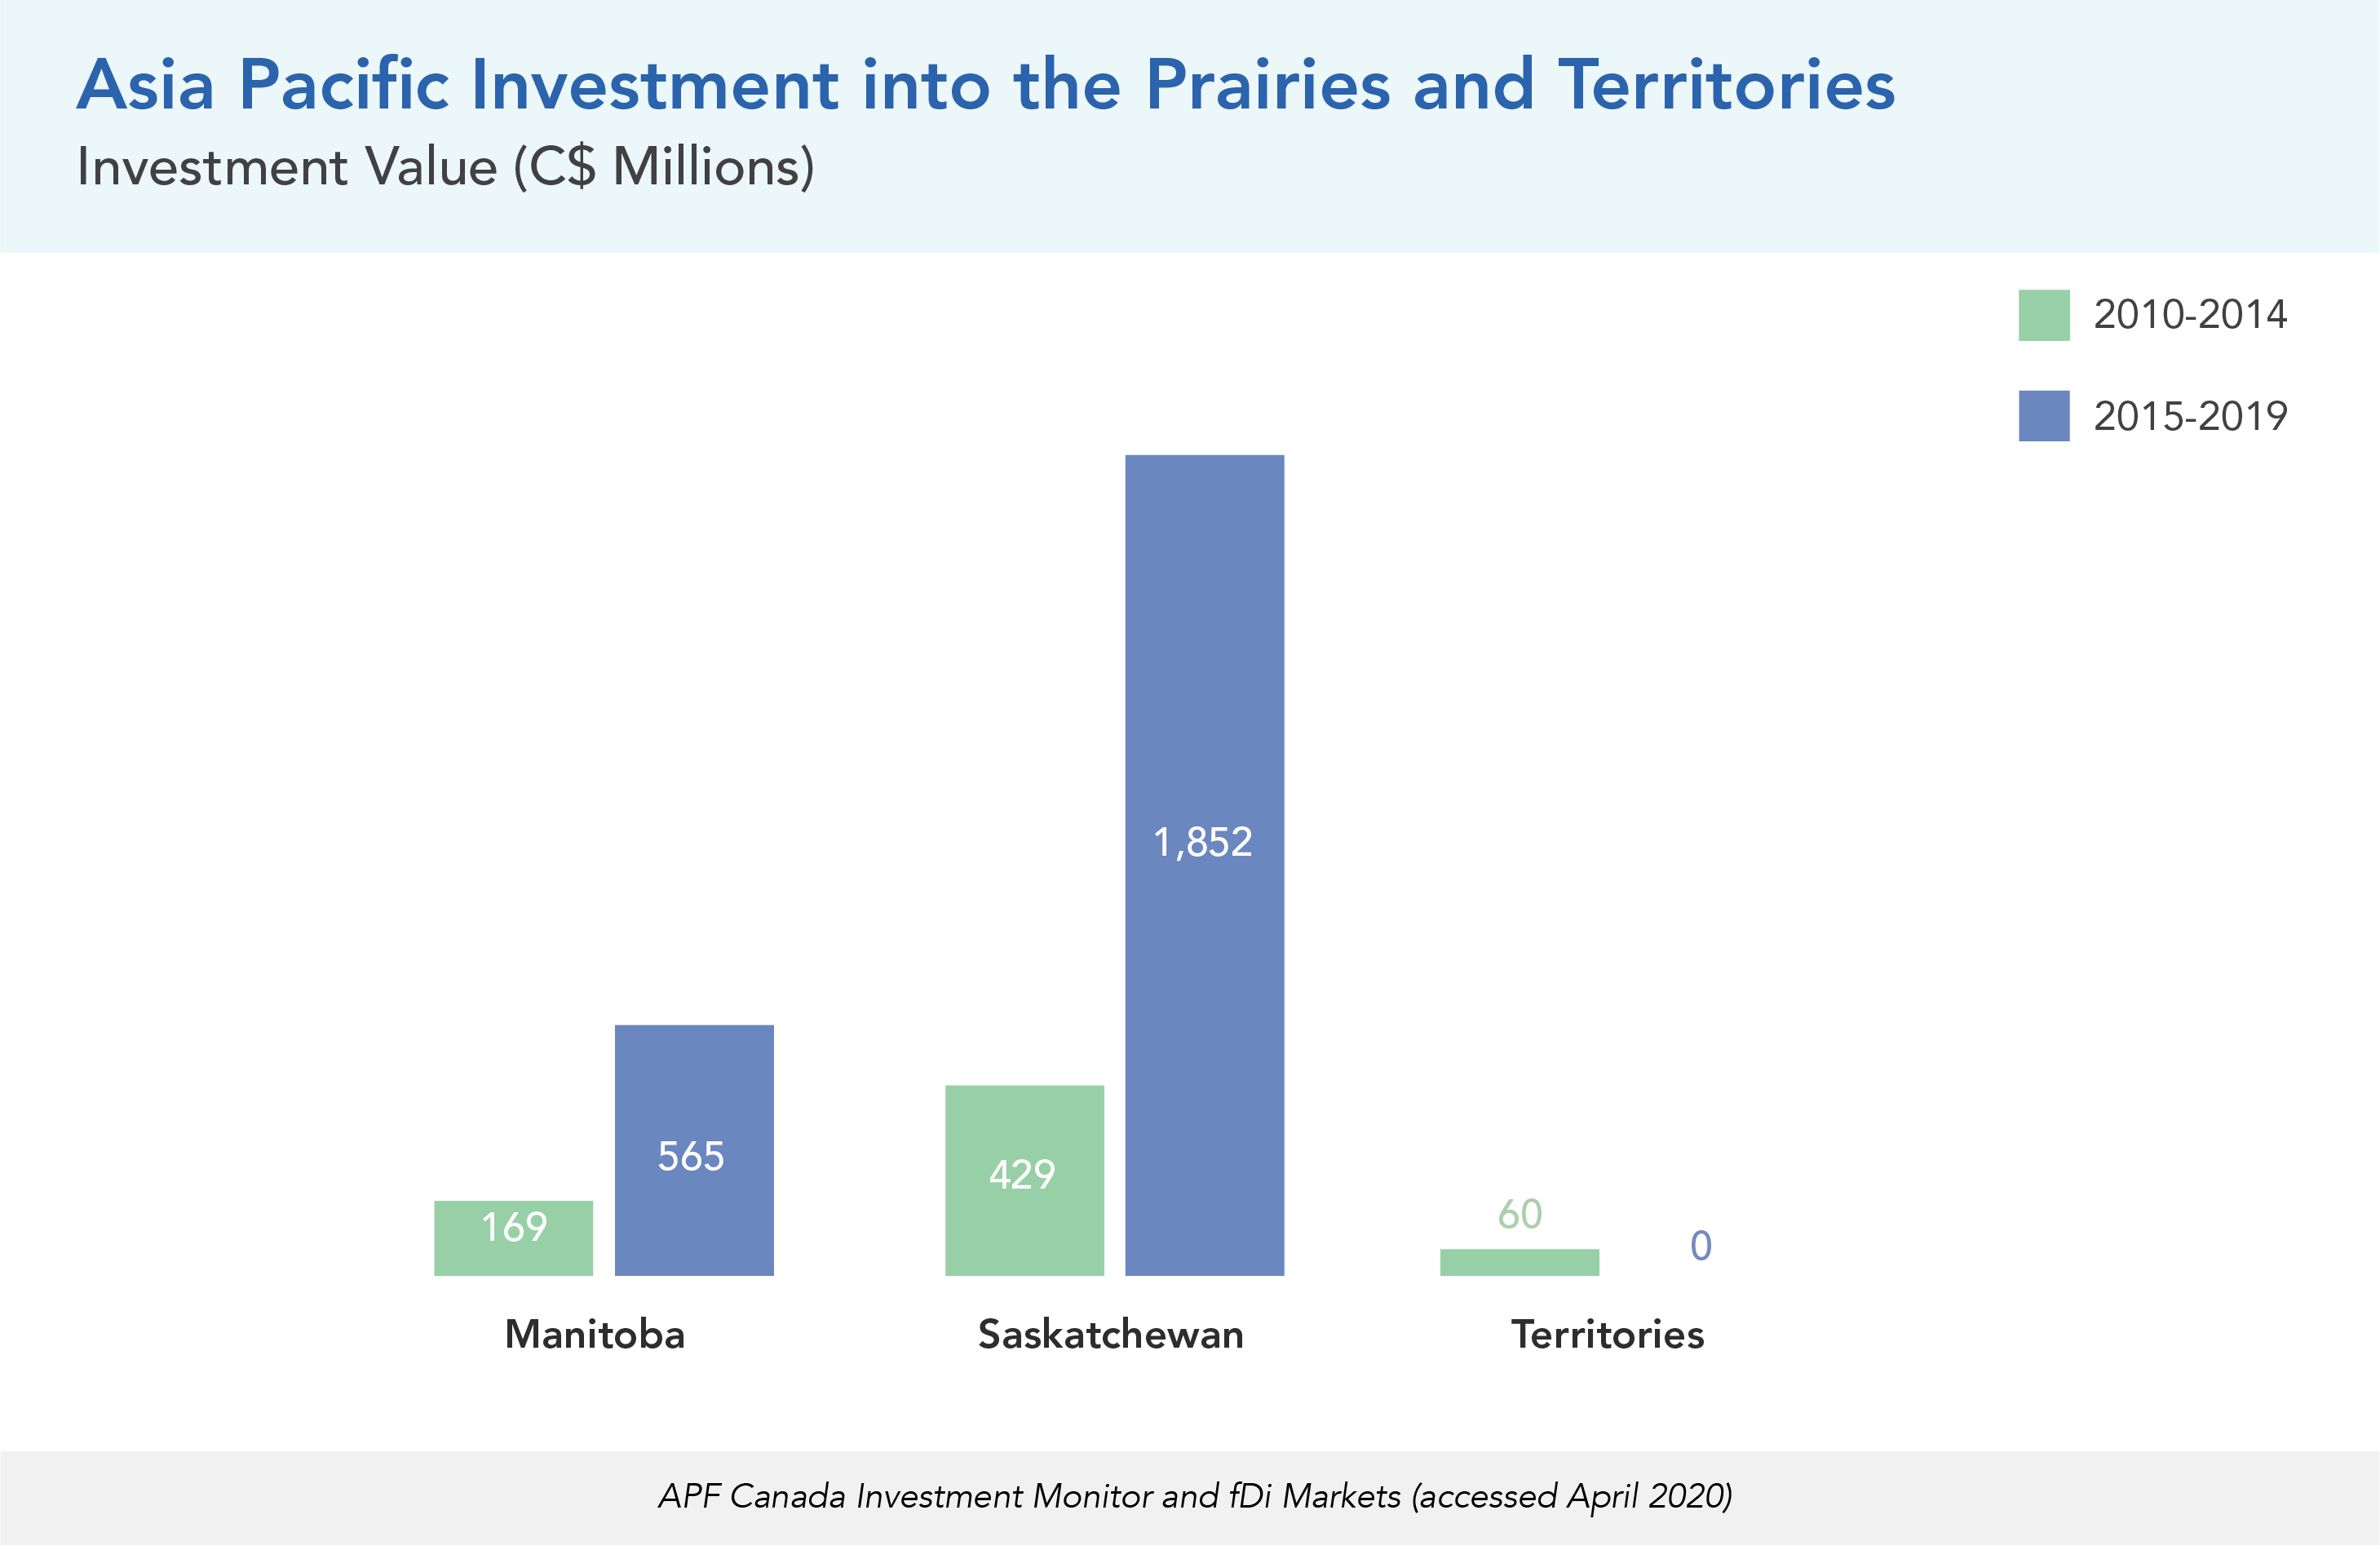 Asia Pacific Investment into the Prairies and Territories